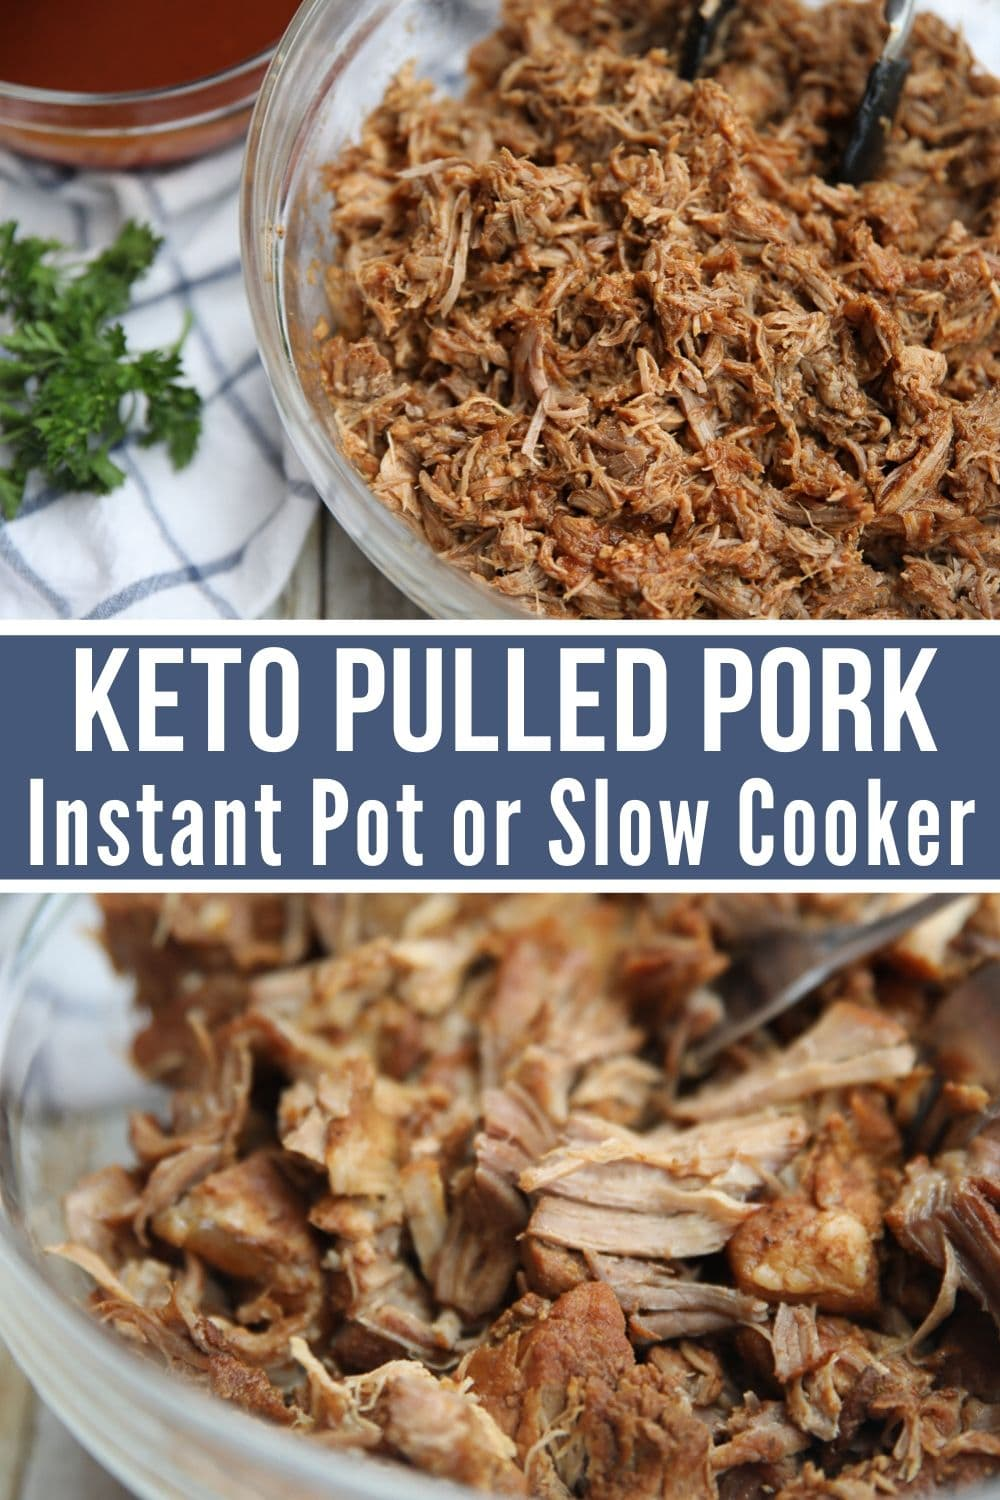 keto pulled pork collage